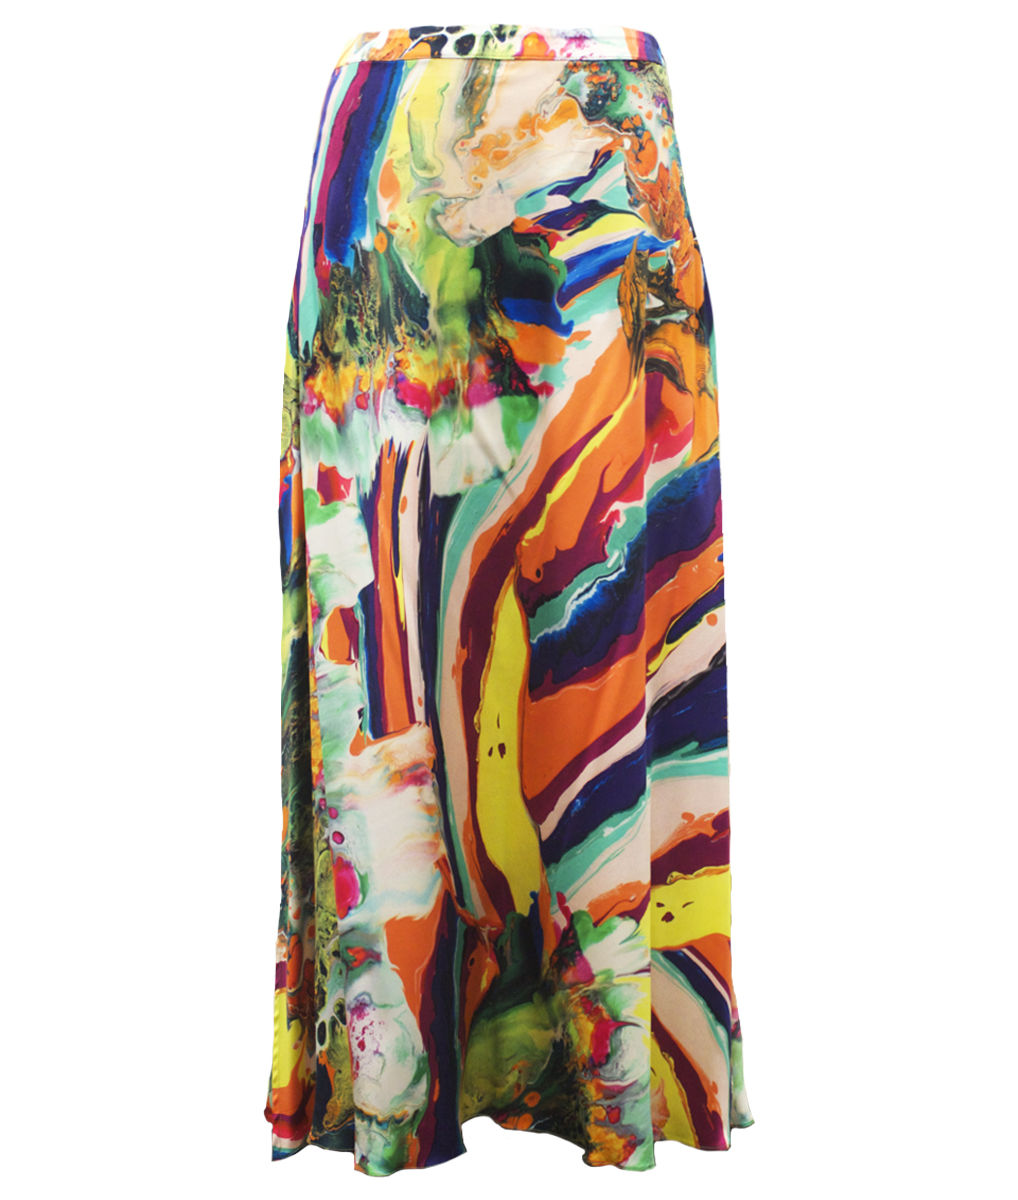 Pluto Silk skirt in Magma print - product images  of